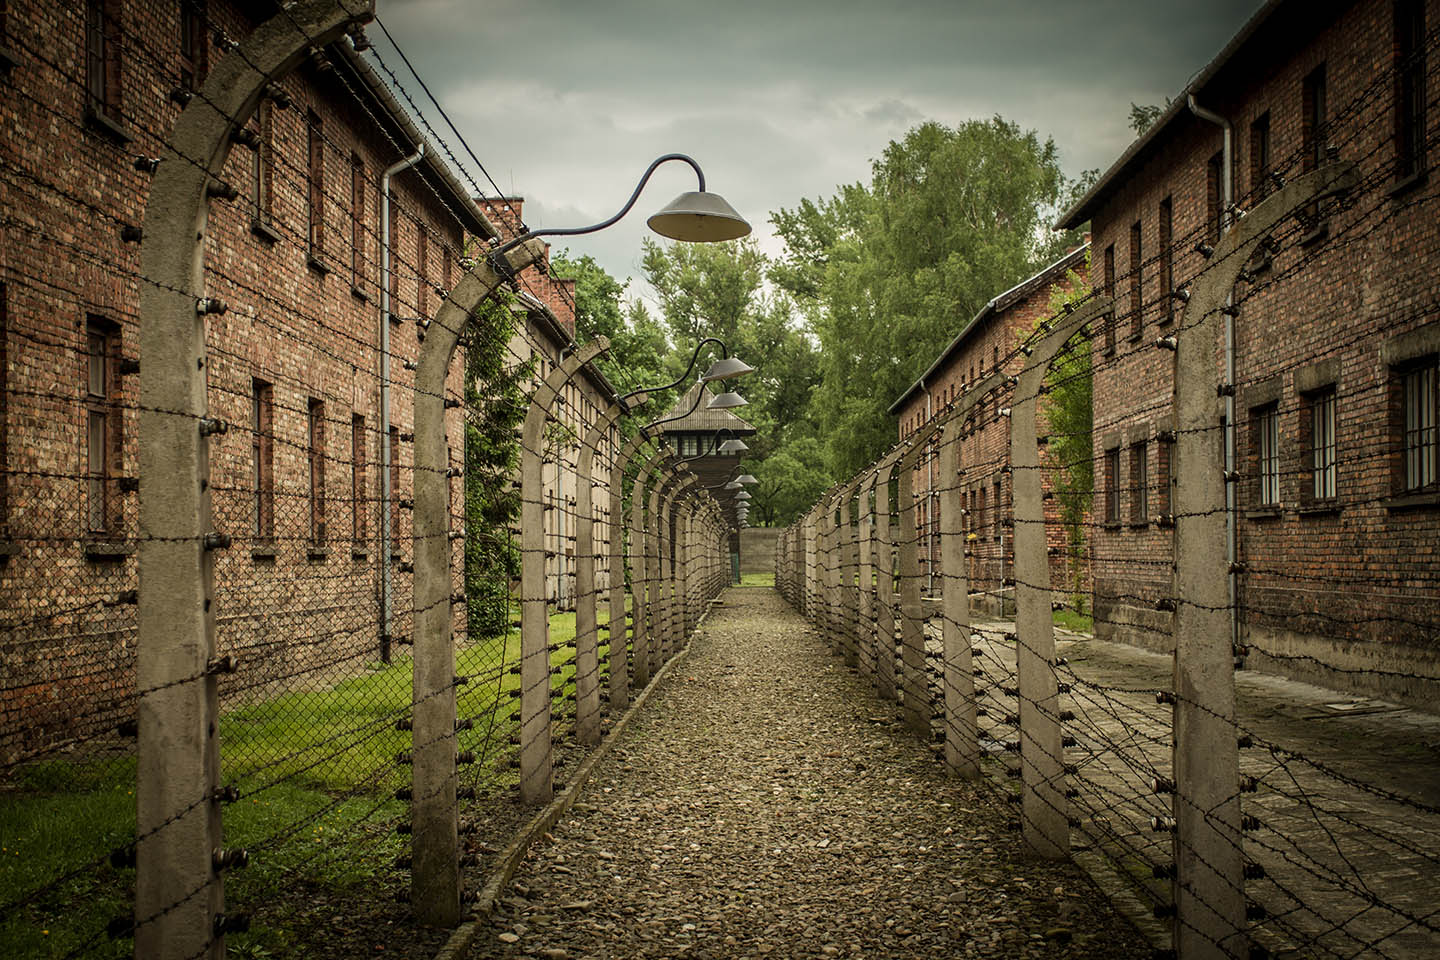 Auschwitz concentration Camp barracks death zone/ Konzentrationslager Denkmal Baracke Todeszone